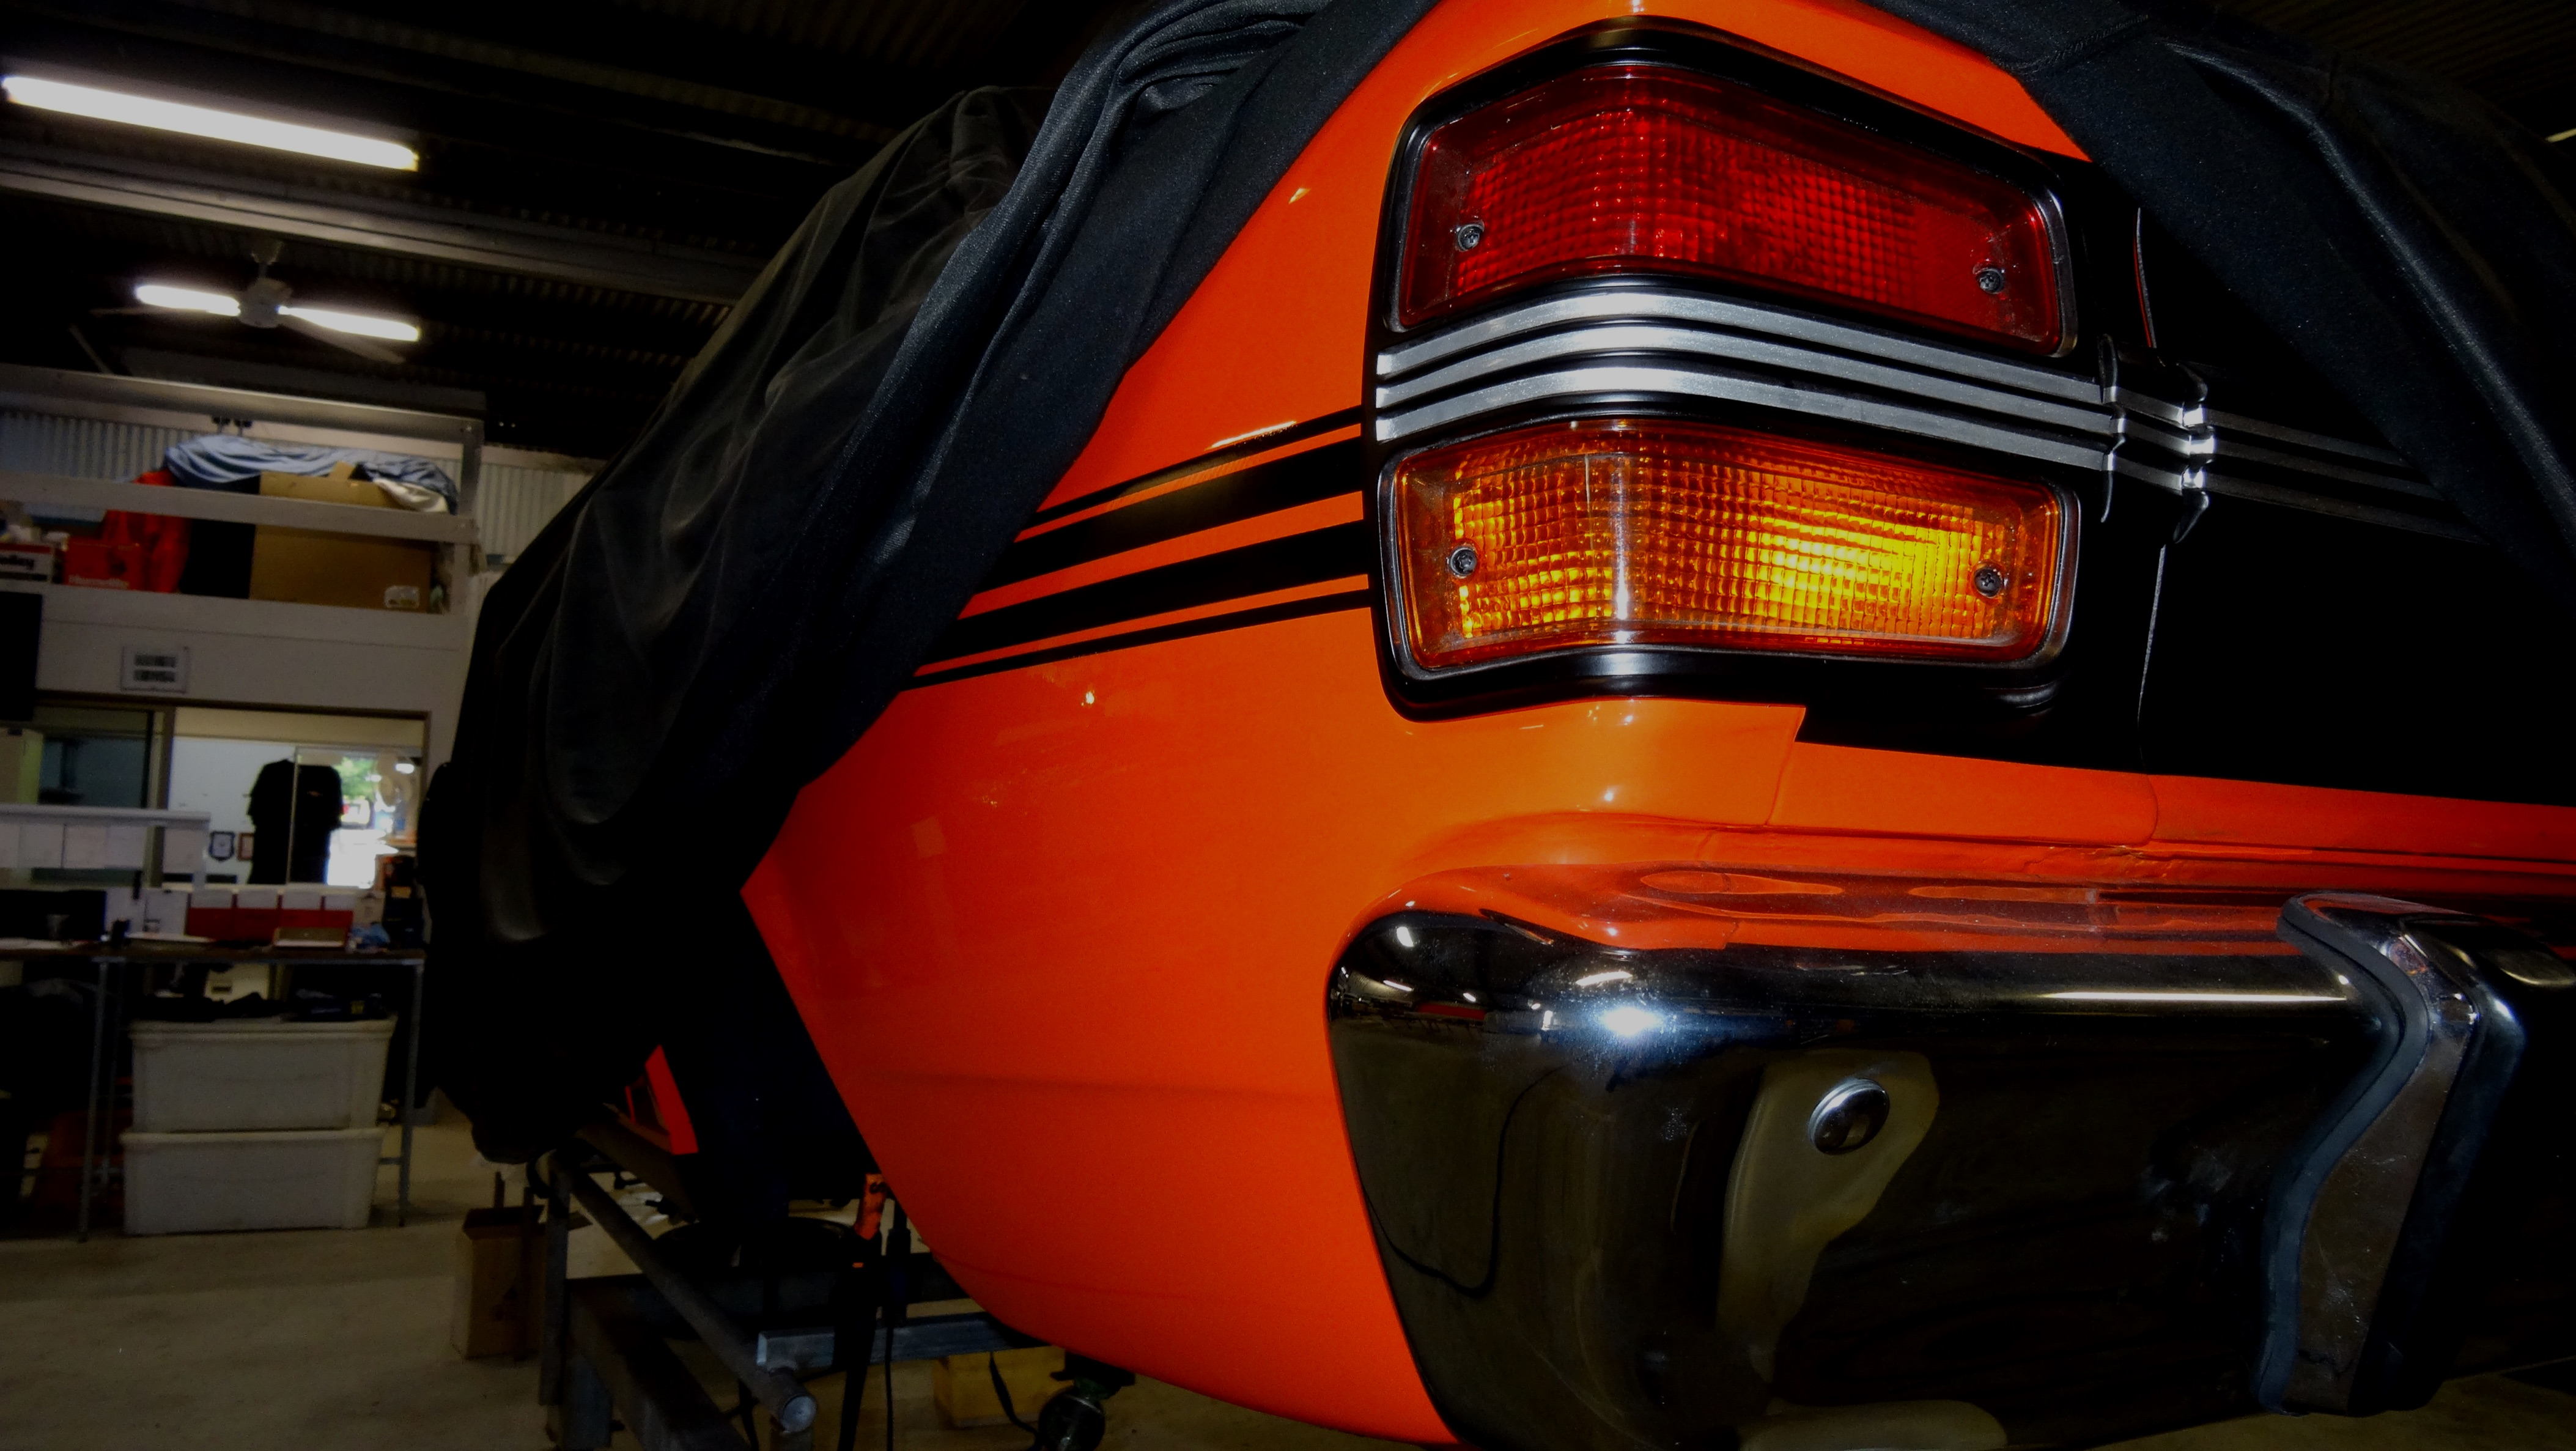 An XY Ford Falcon receiving restoration at Blackstar Autocare